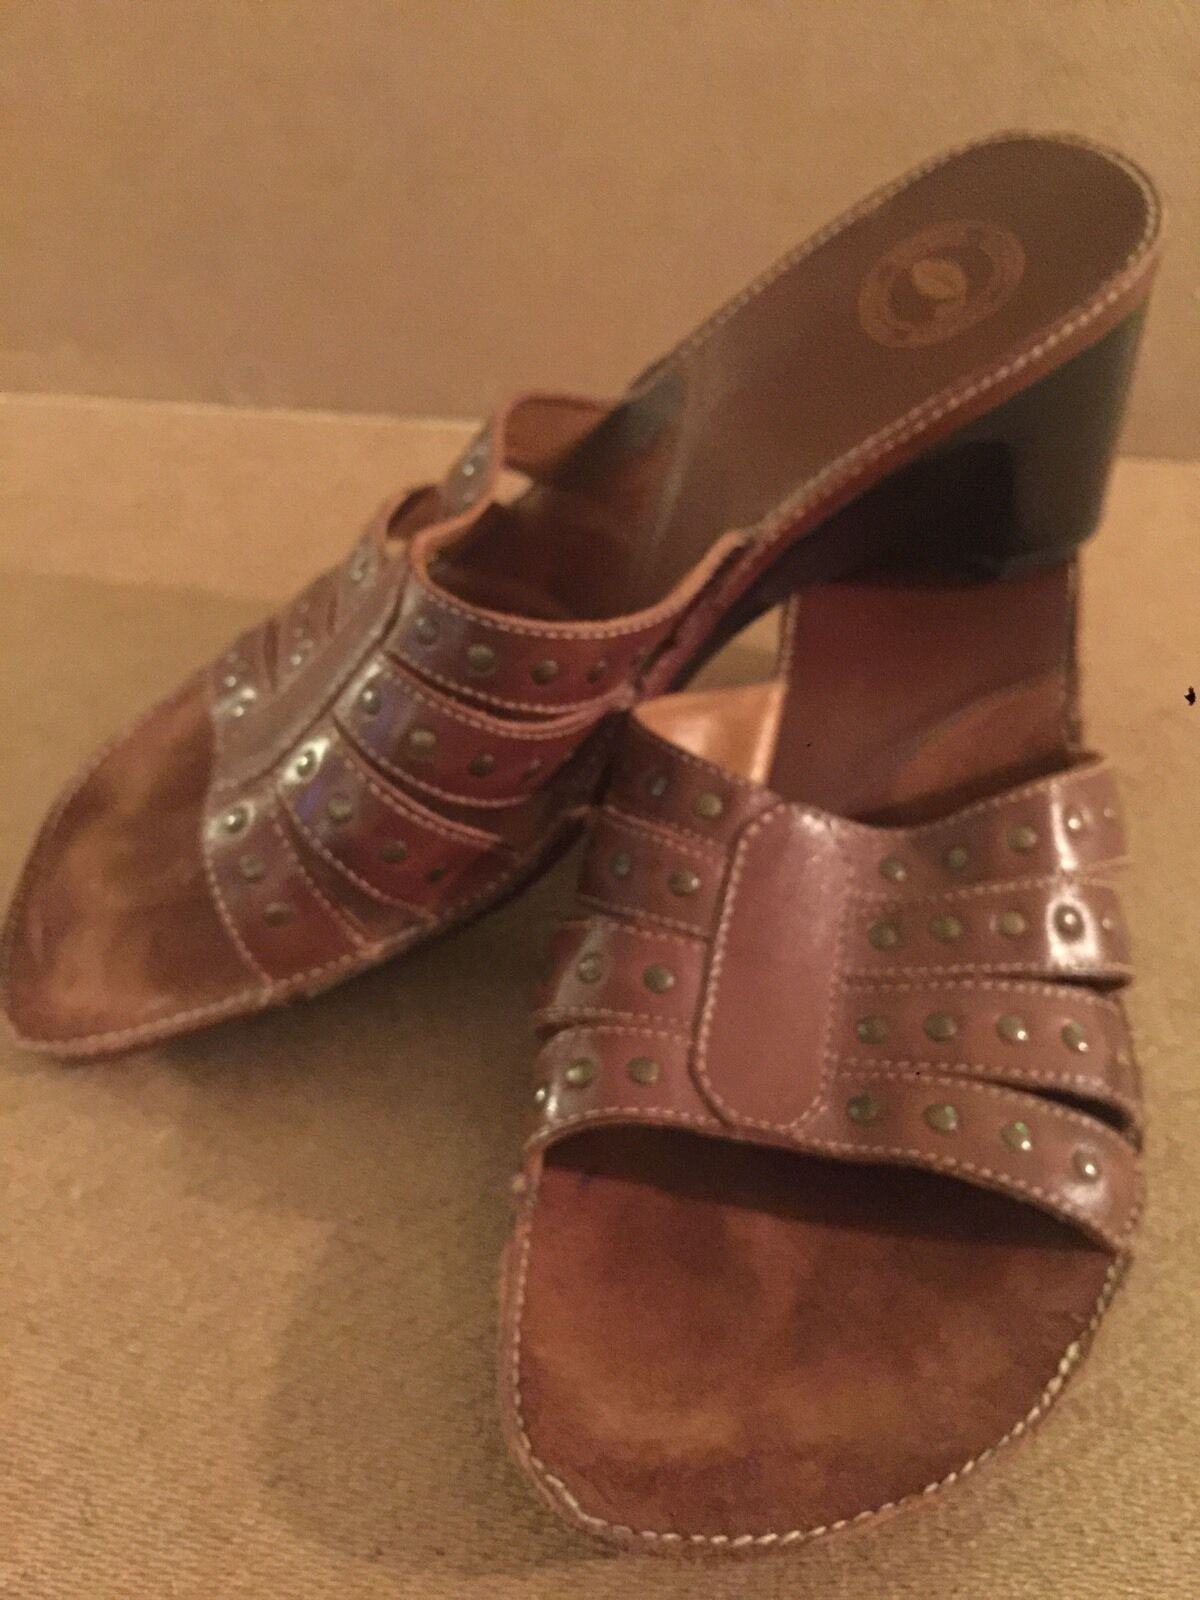 Women's on sz 9 M Brown Leather Studs NURTURE slip on Women's Sandals/wedges heels Shoes sw 4bc4a1